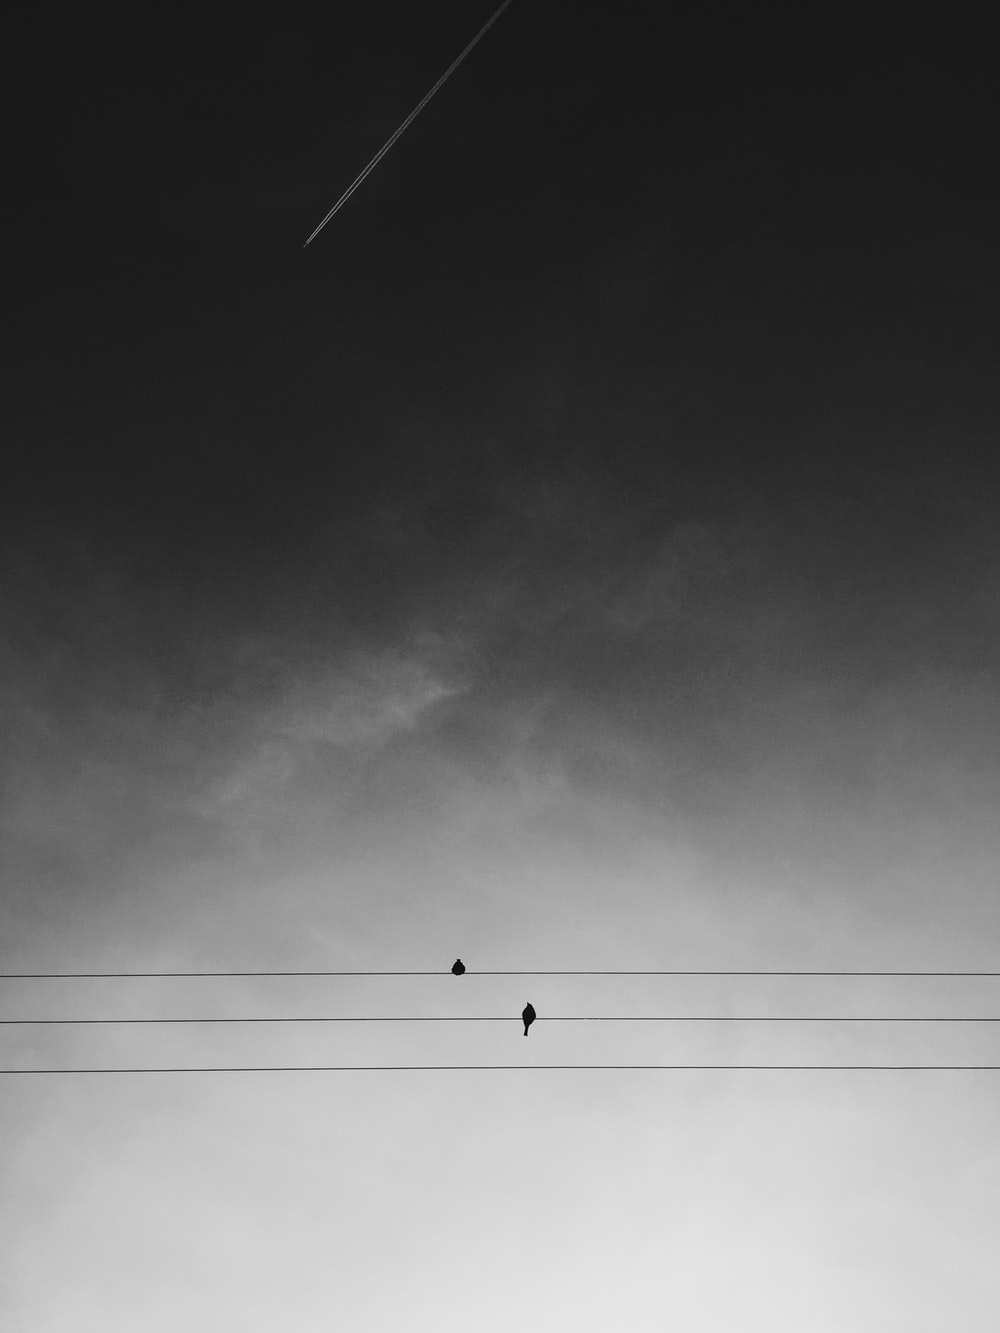 two black birds on electric wires under gray sky during daytime